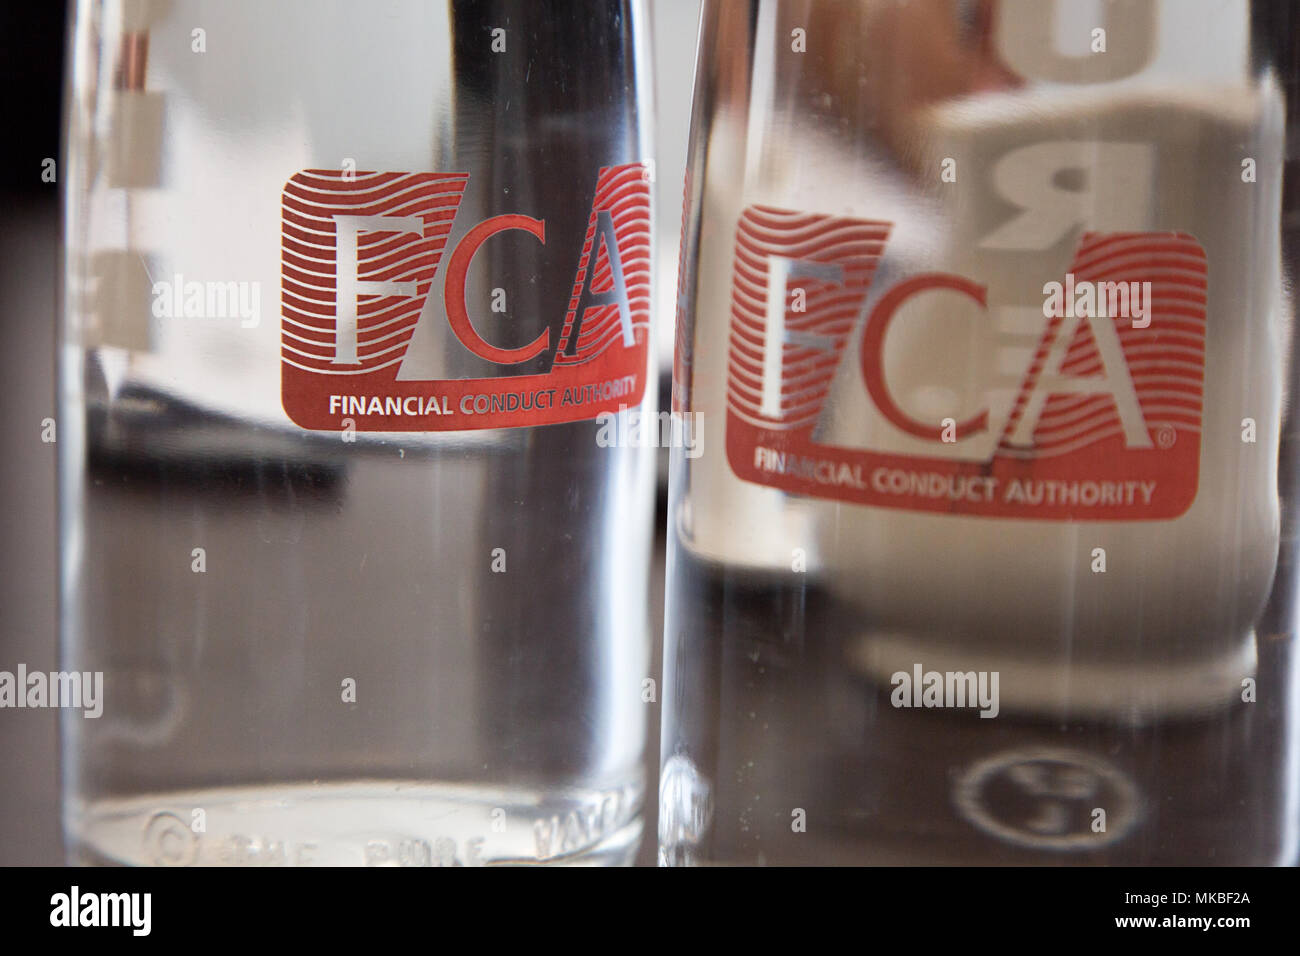 Water bottles at the Financial Conduct Authority (FCA) offices, North Colonnade, Docklands, London. Logo corporate branding is clearly displayed - Stock Image